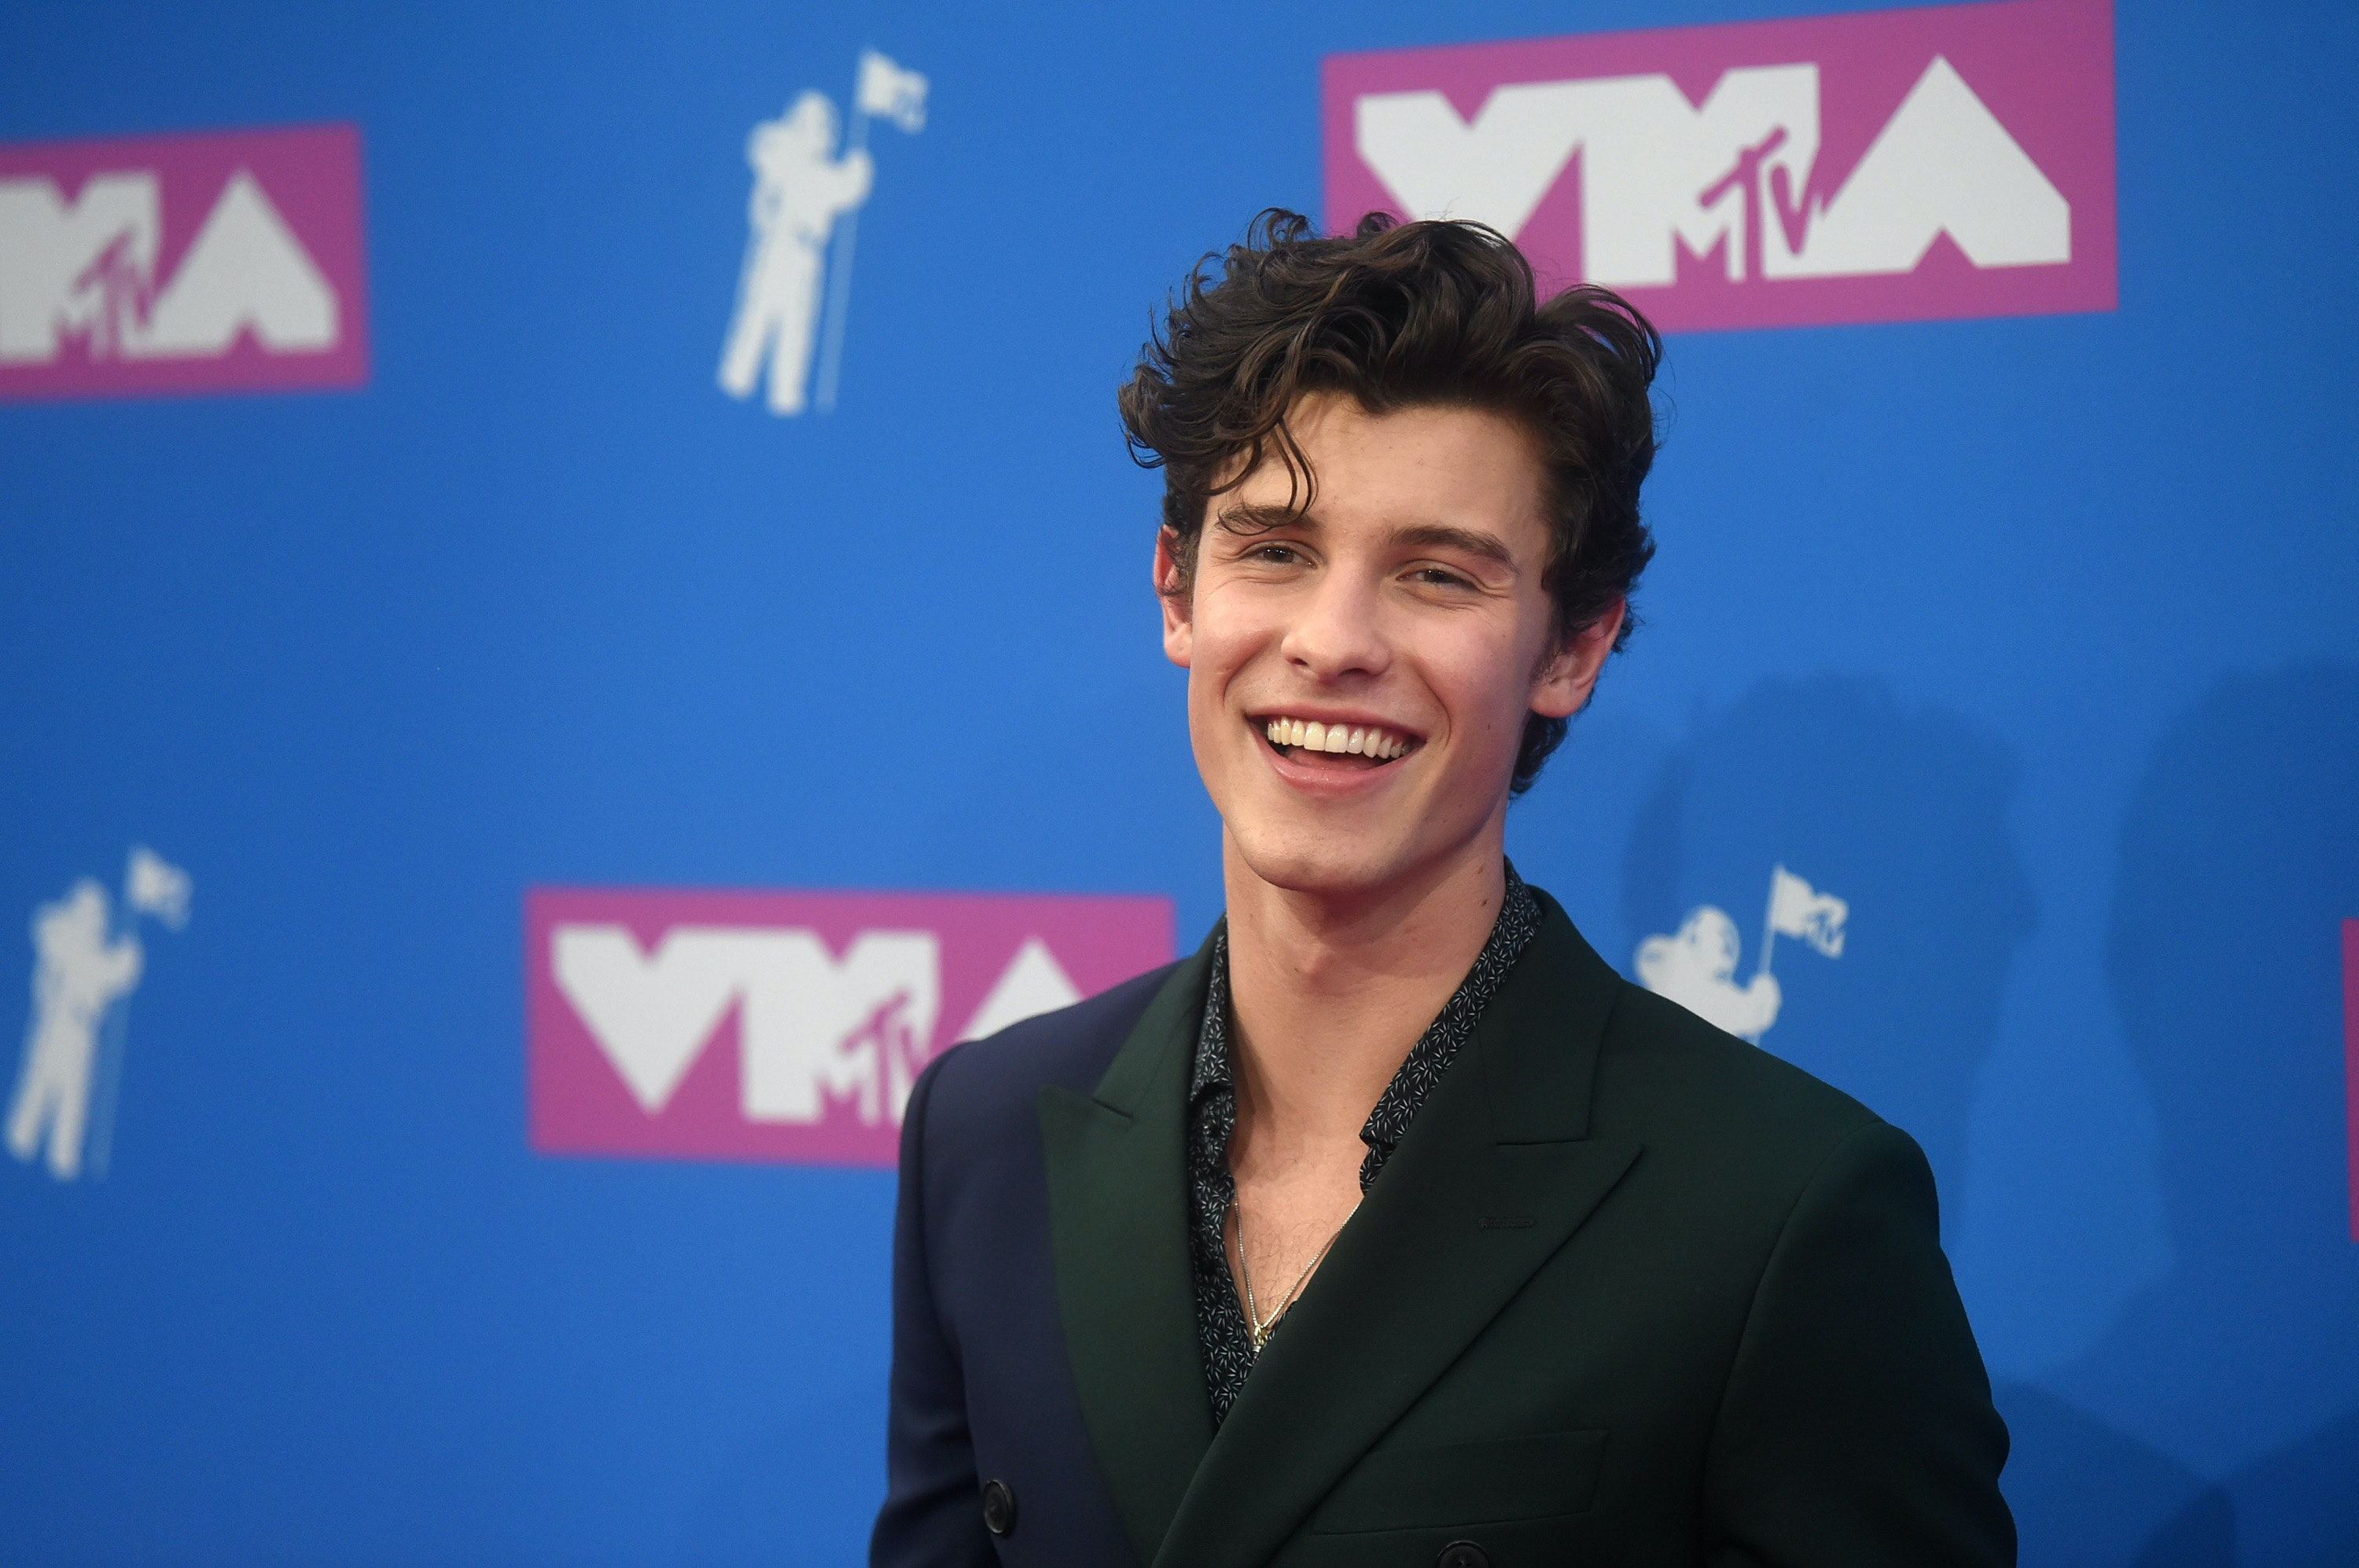 Who is shawn mendes dating right now 2018